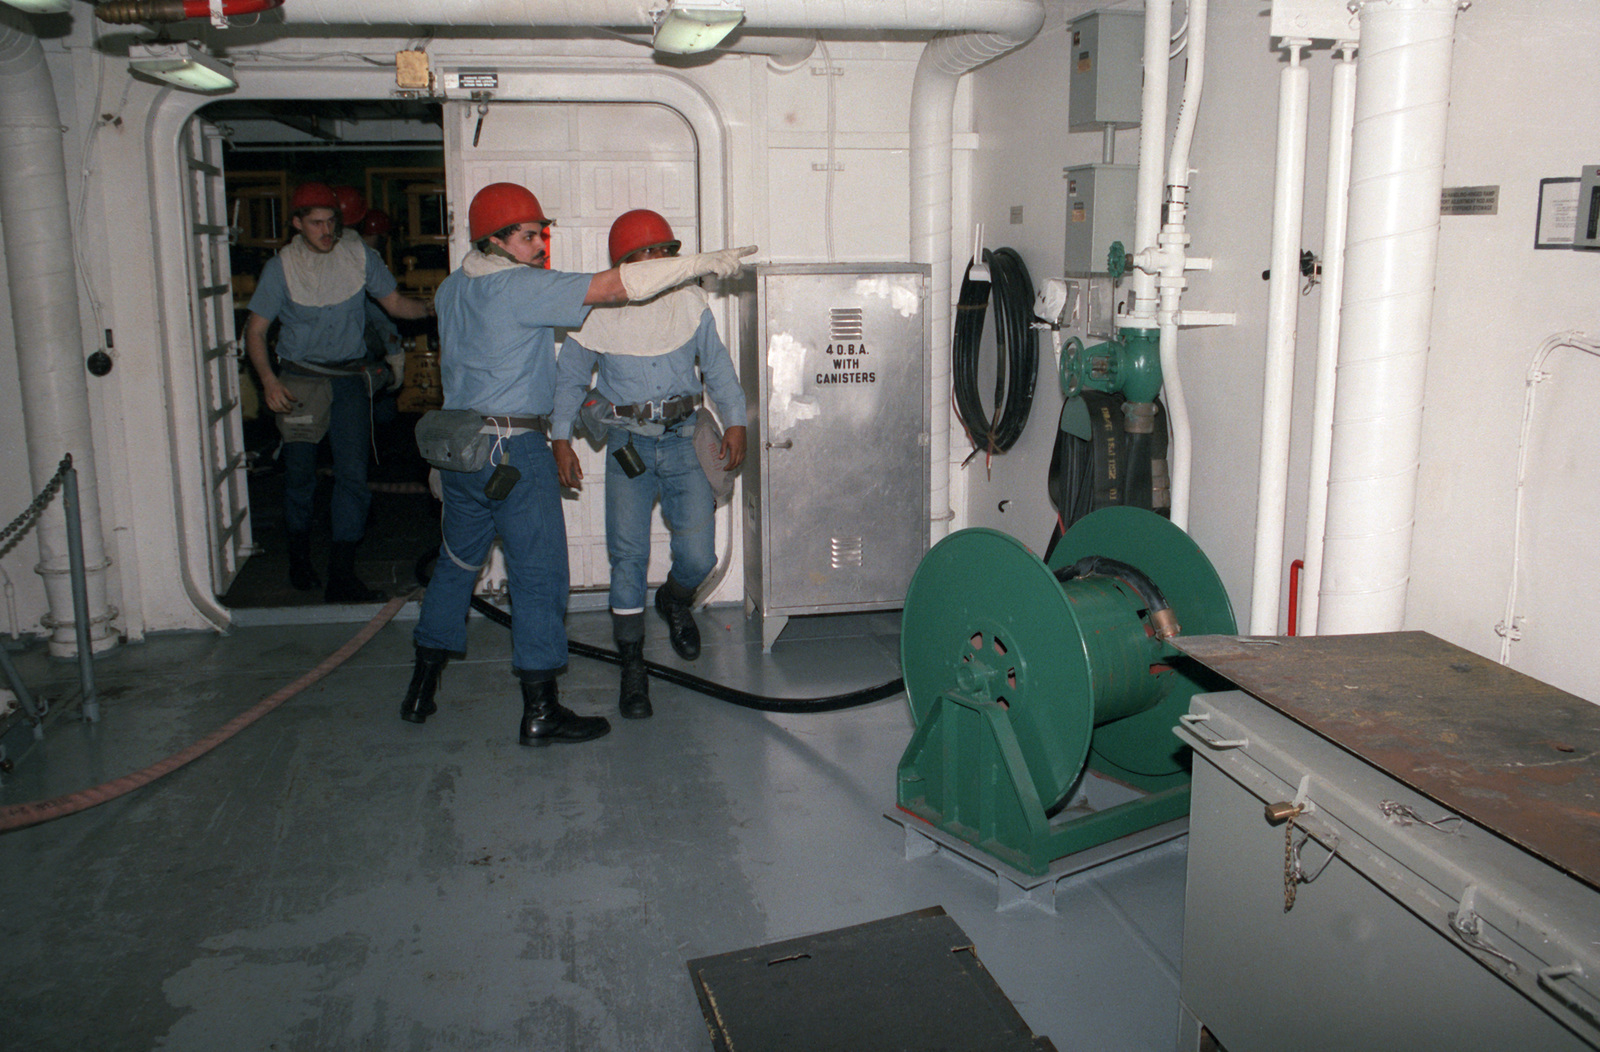 Members of a damage control party fight a simulated fire in a workspace aboard the nuclear-powered aircraft carrier USS THEODORE ROOSEVELT (CVN 71).  The ROOSEVELT is undergoing readiness testing during post-commissioning sea trails